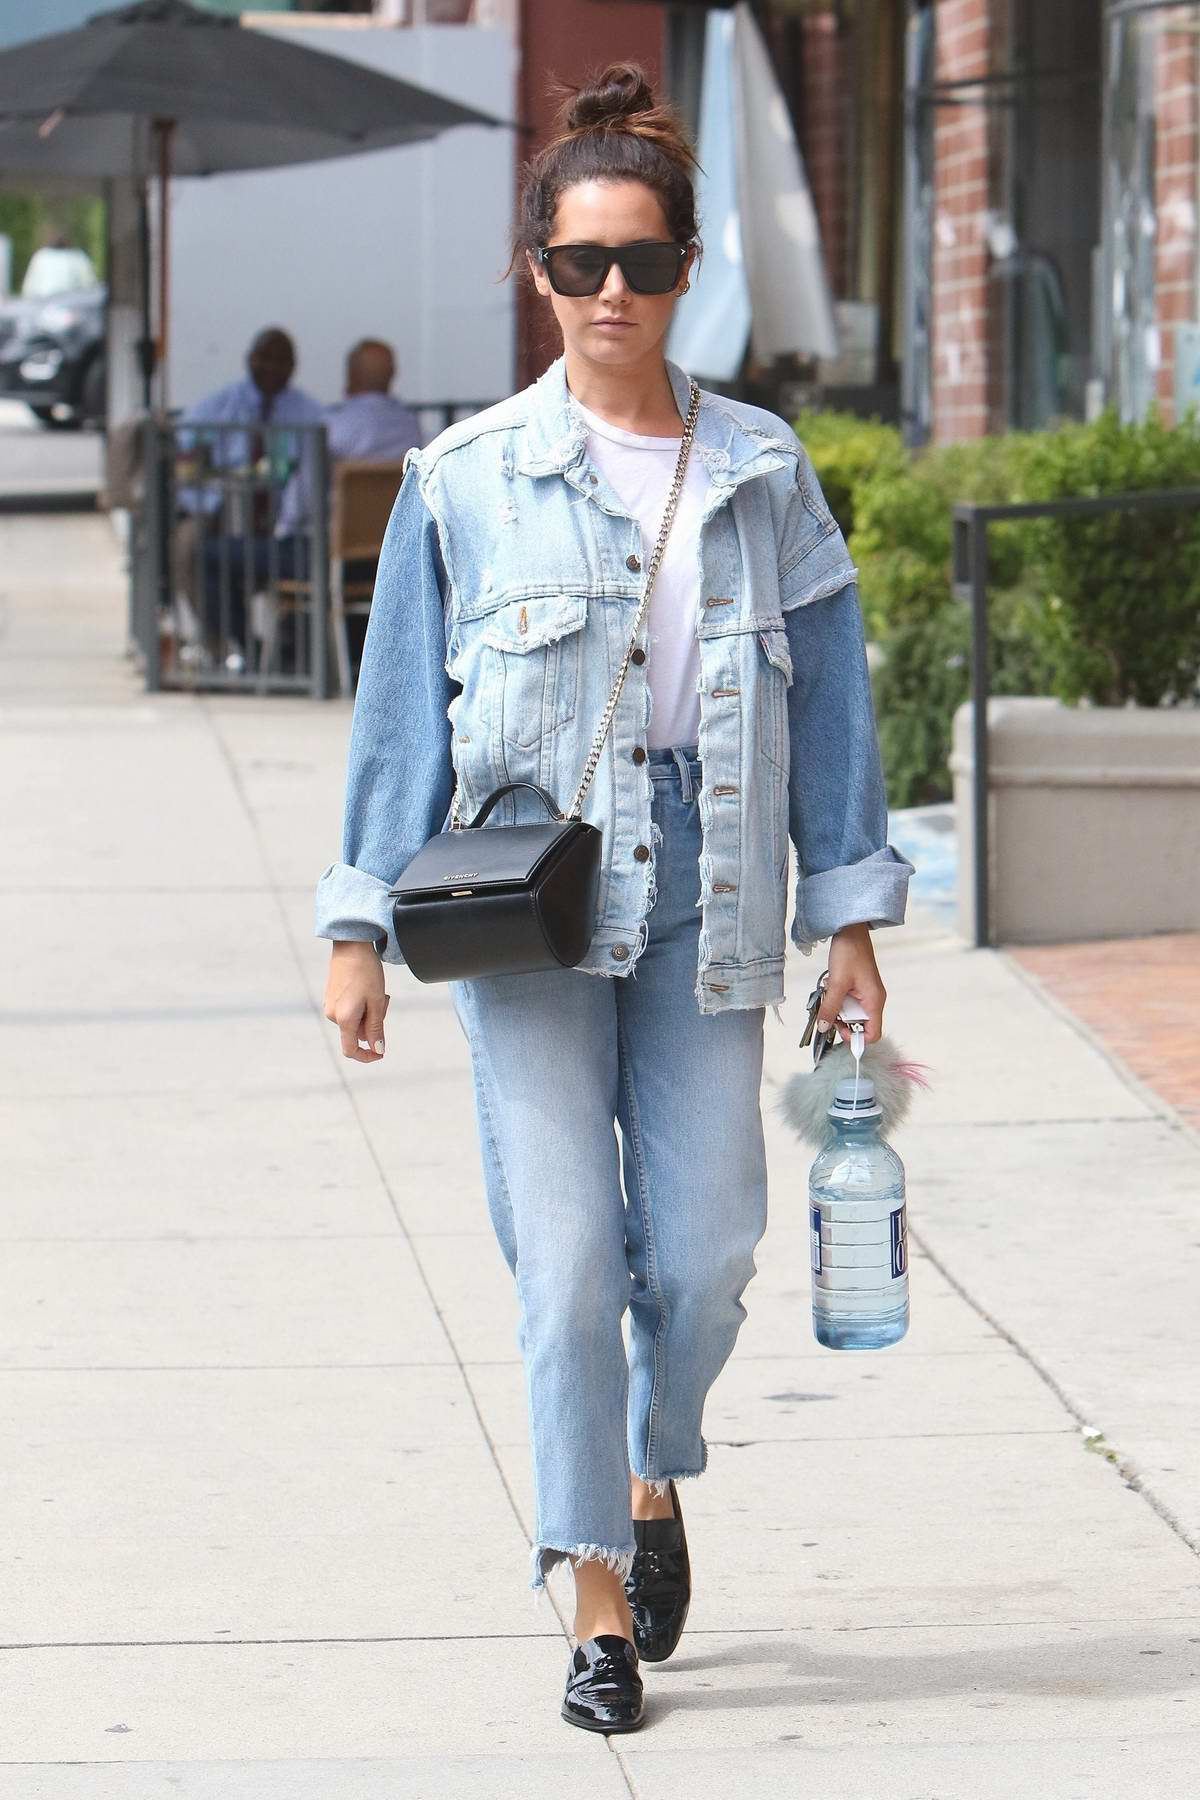 Ashley Tisdale dressed in denim visited Anastasia Beverly Hills in Los Angeles